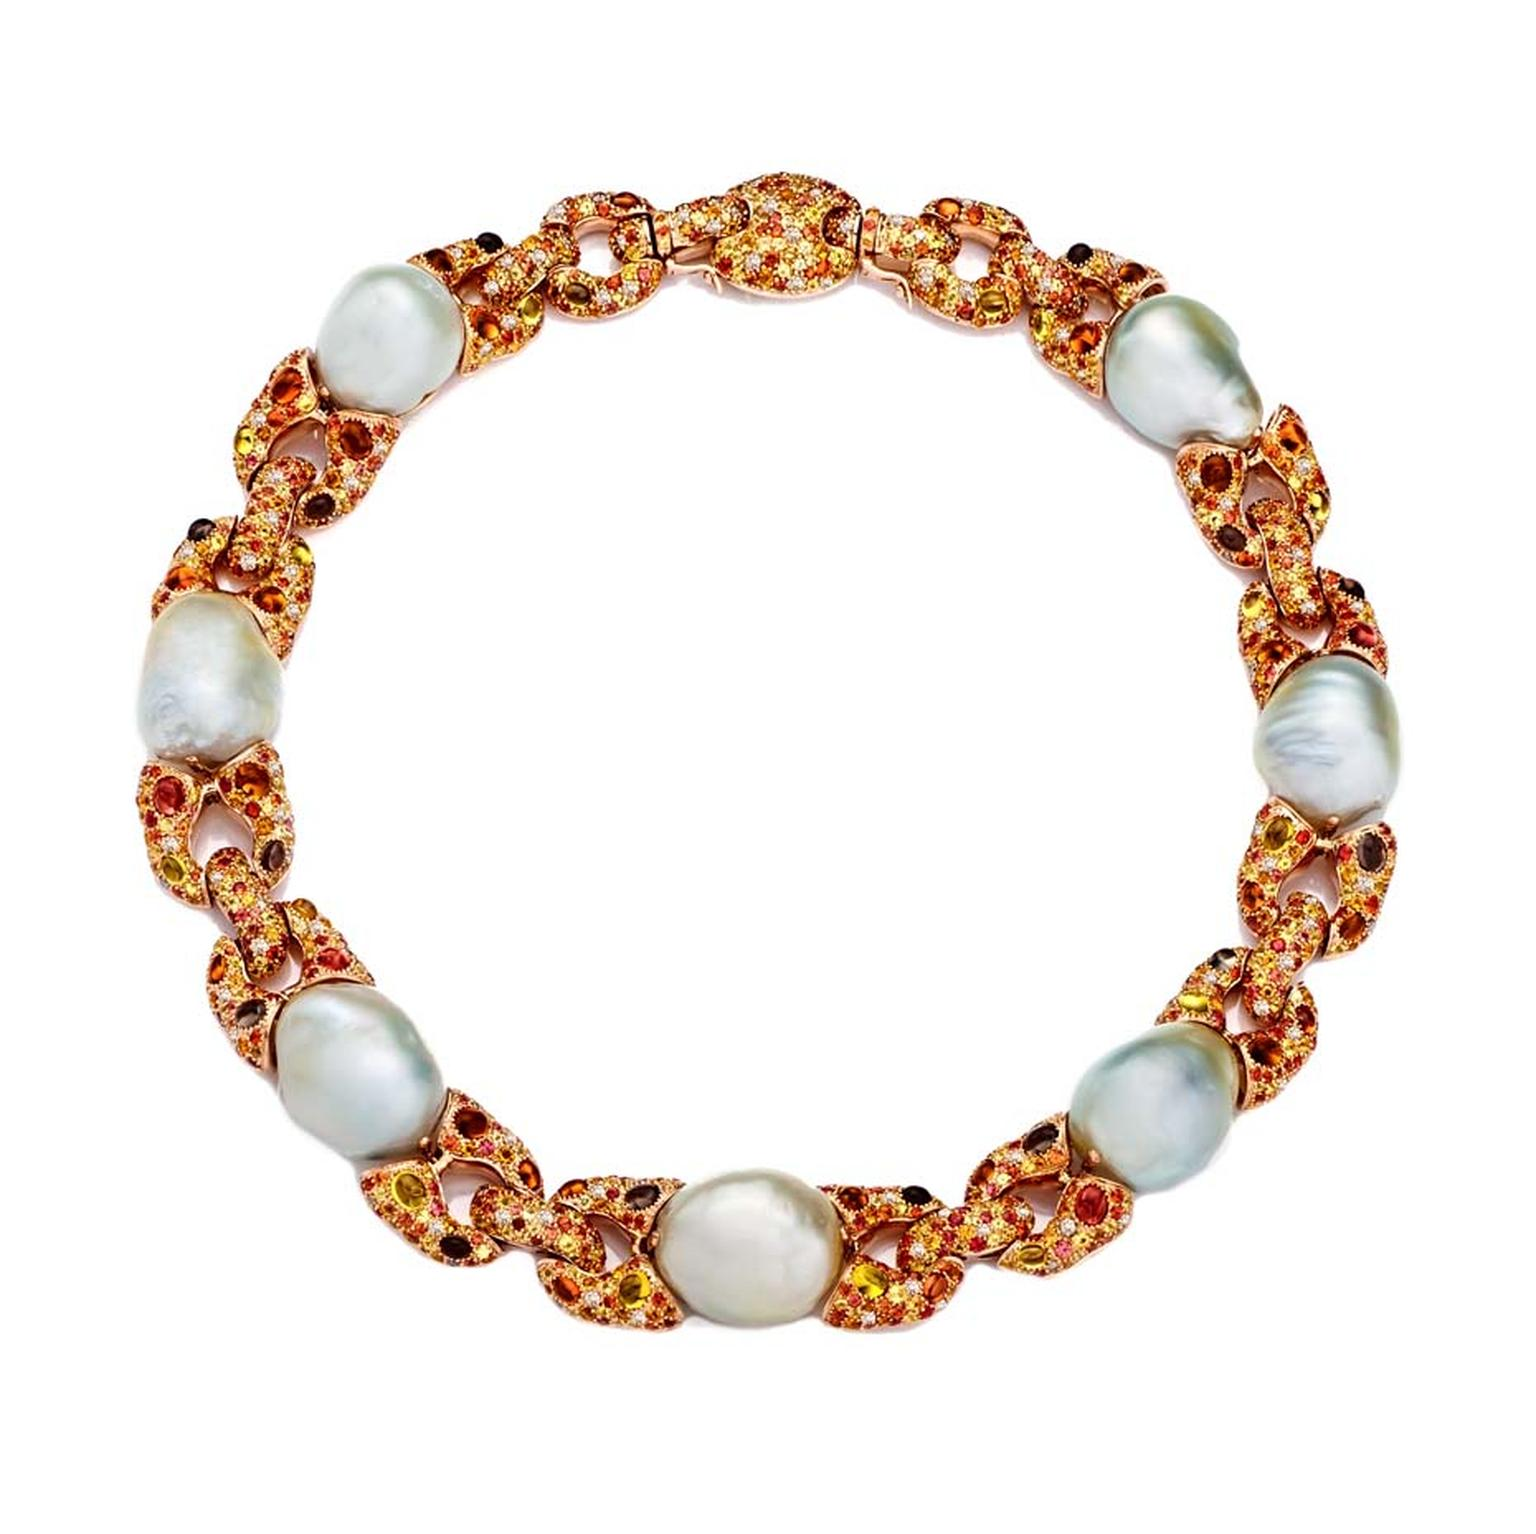 Margot McKinney luminescent gem-set collier with Baroque South Sea pearls.